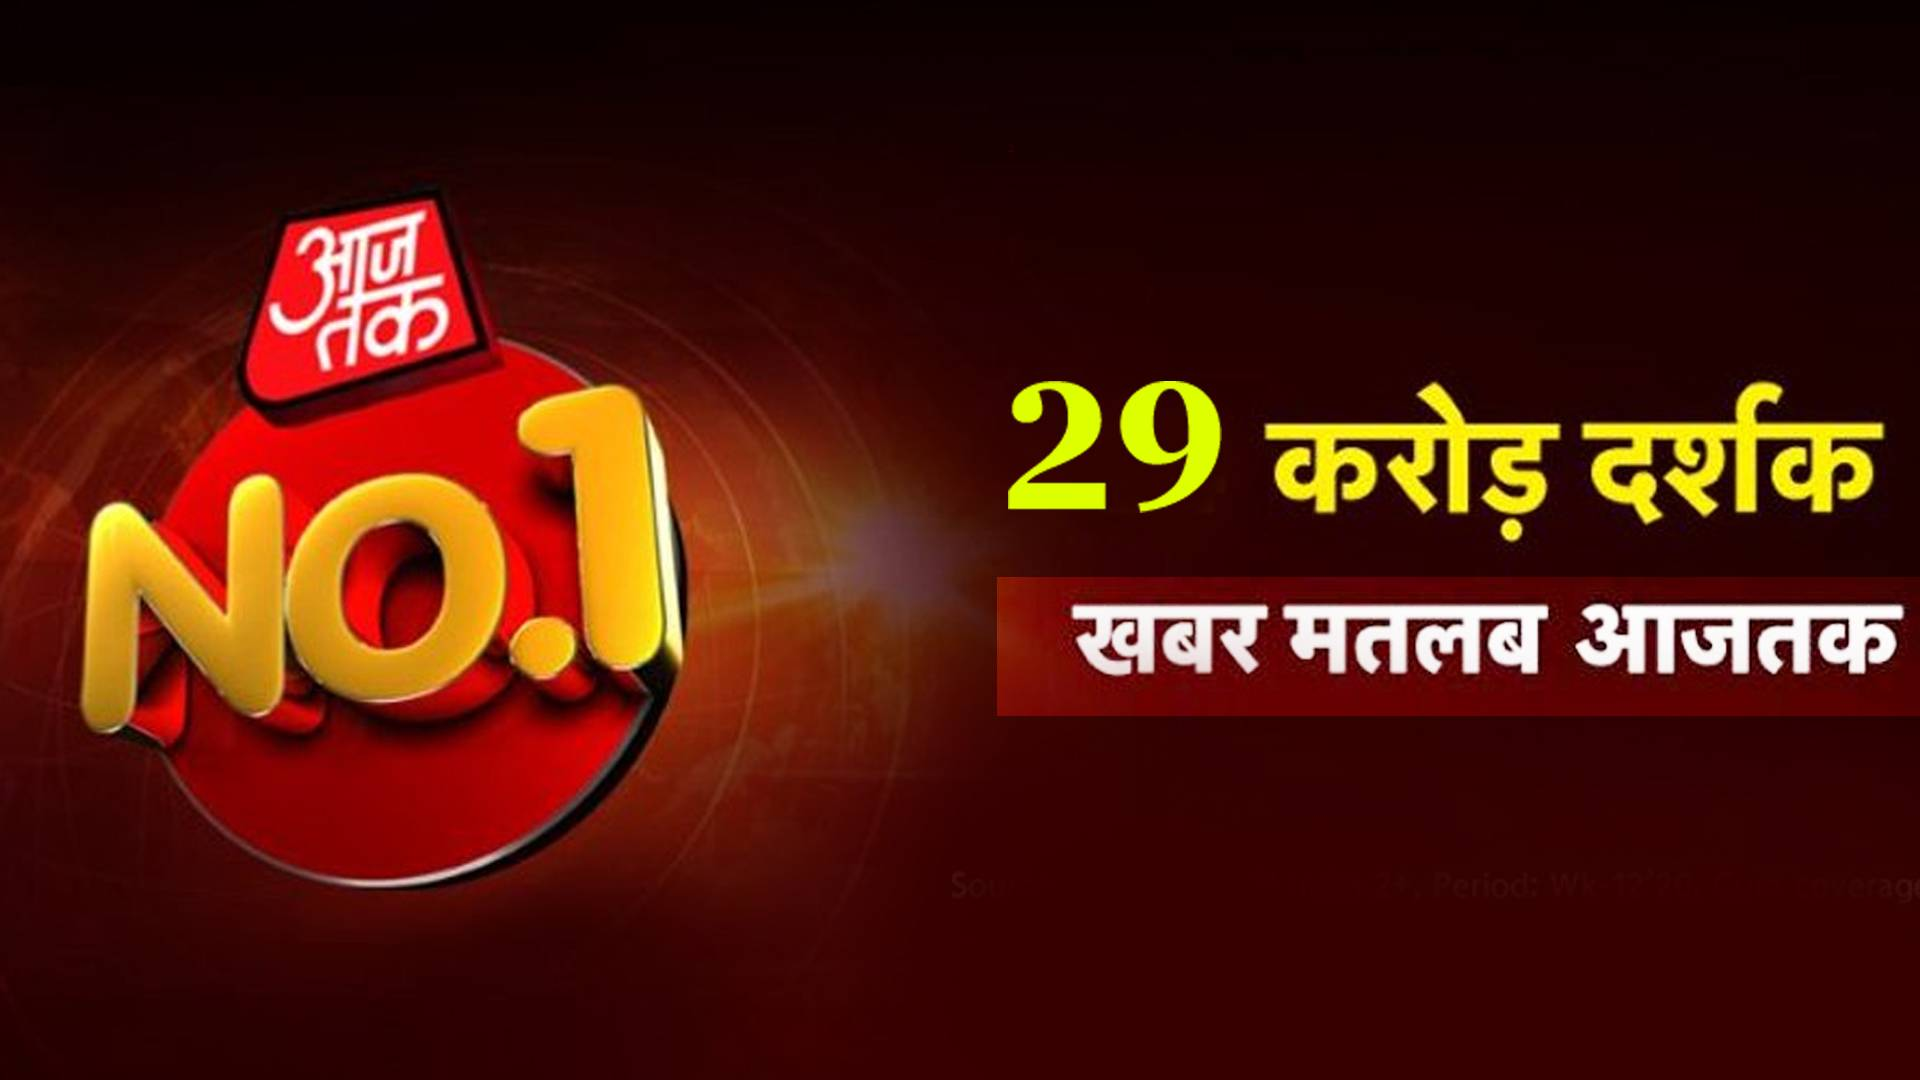 Aaj Tak becomes most watched news channel during coronavirus